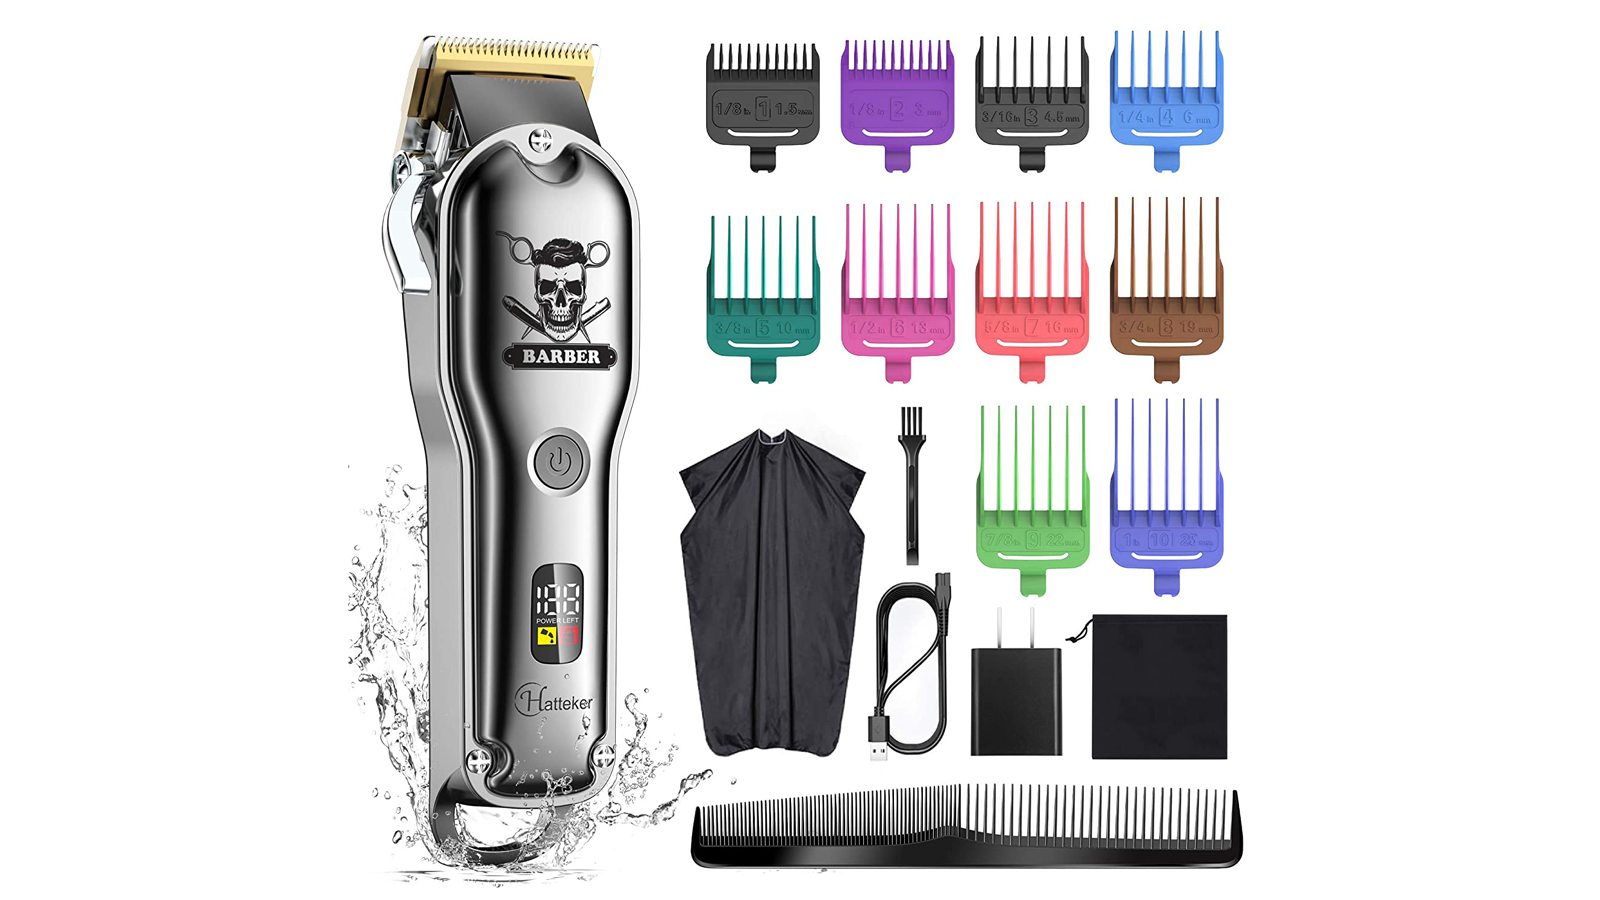 This Easy-to-Use Haircut Kit Can Help You Get a Fresh Look at Home